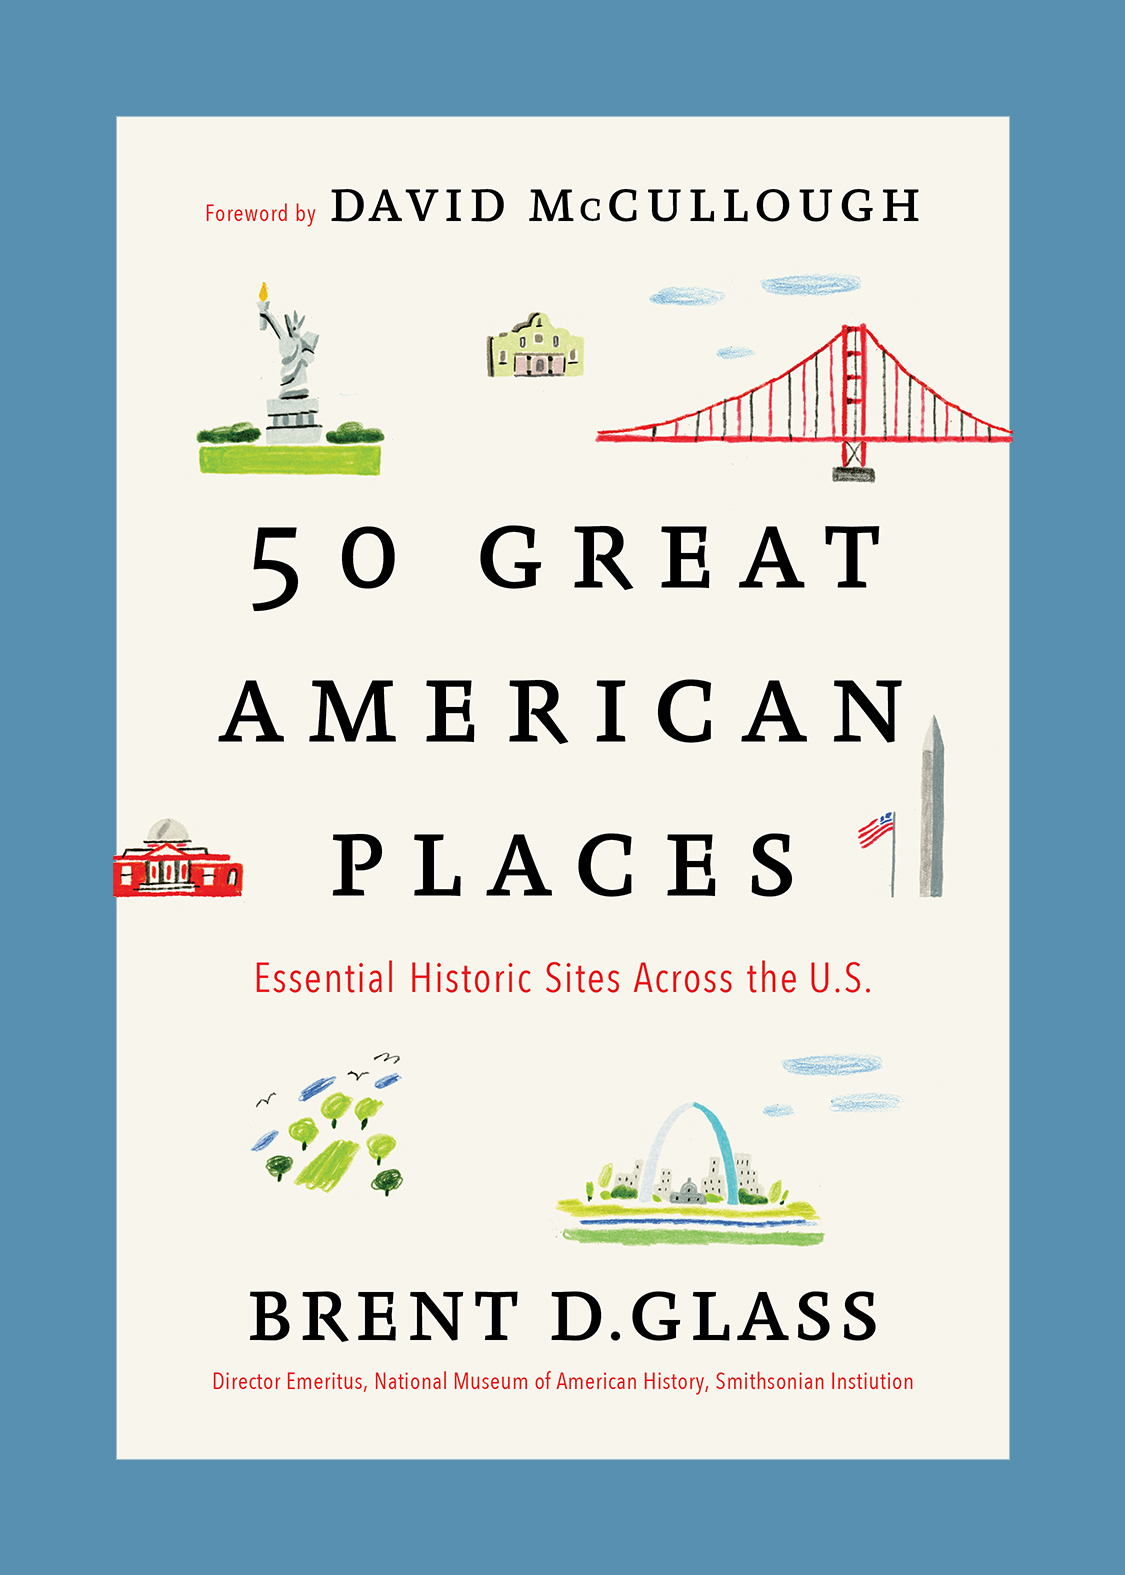 """""""50 Great American Places"""" author to speak Oct. 10-11 at fundraisers in Tucson and Phoenix"""